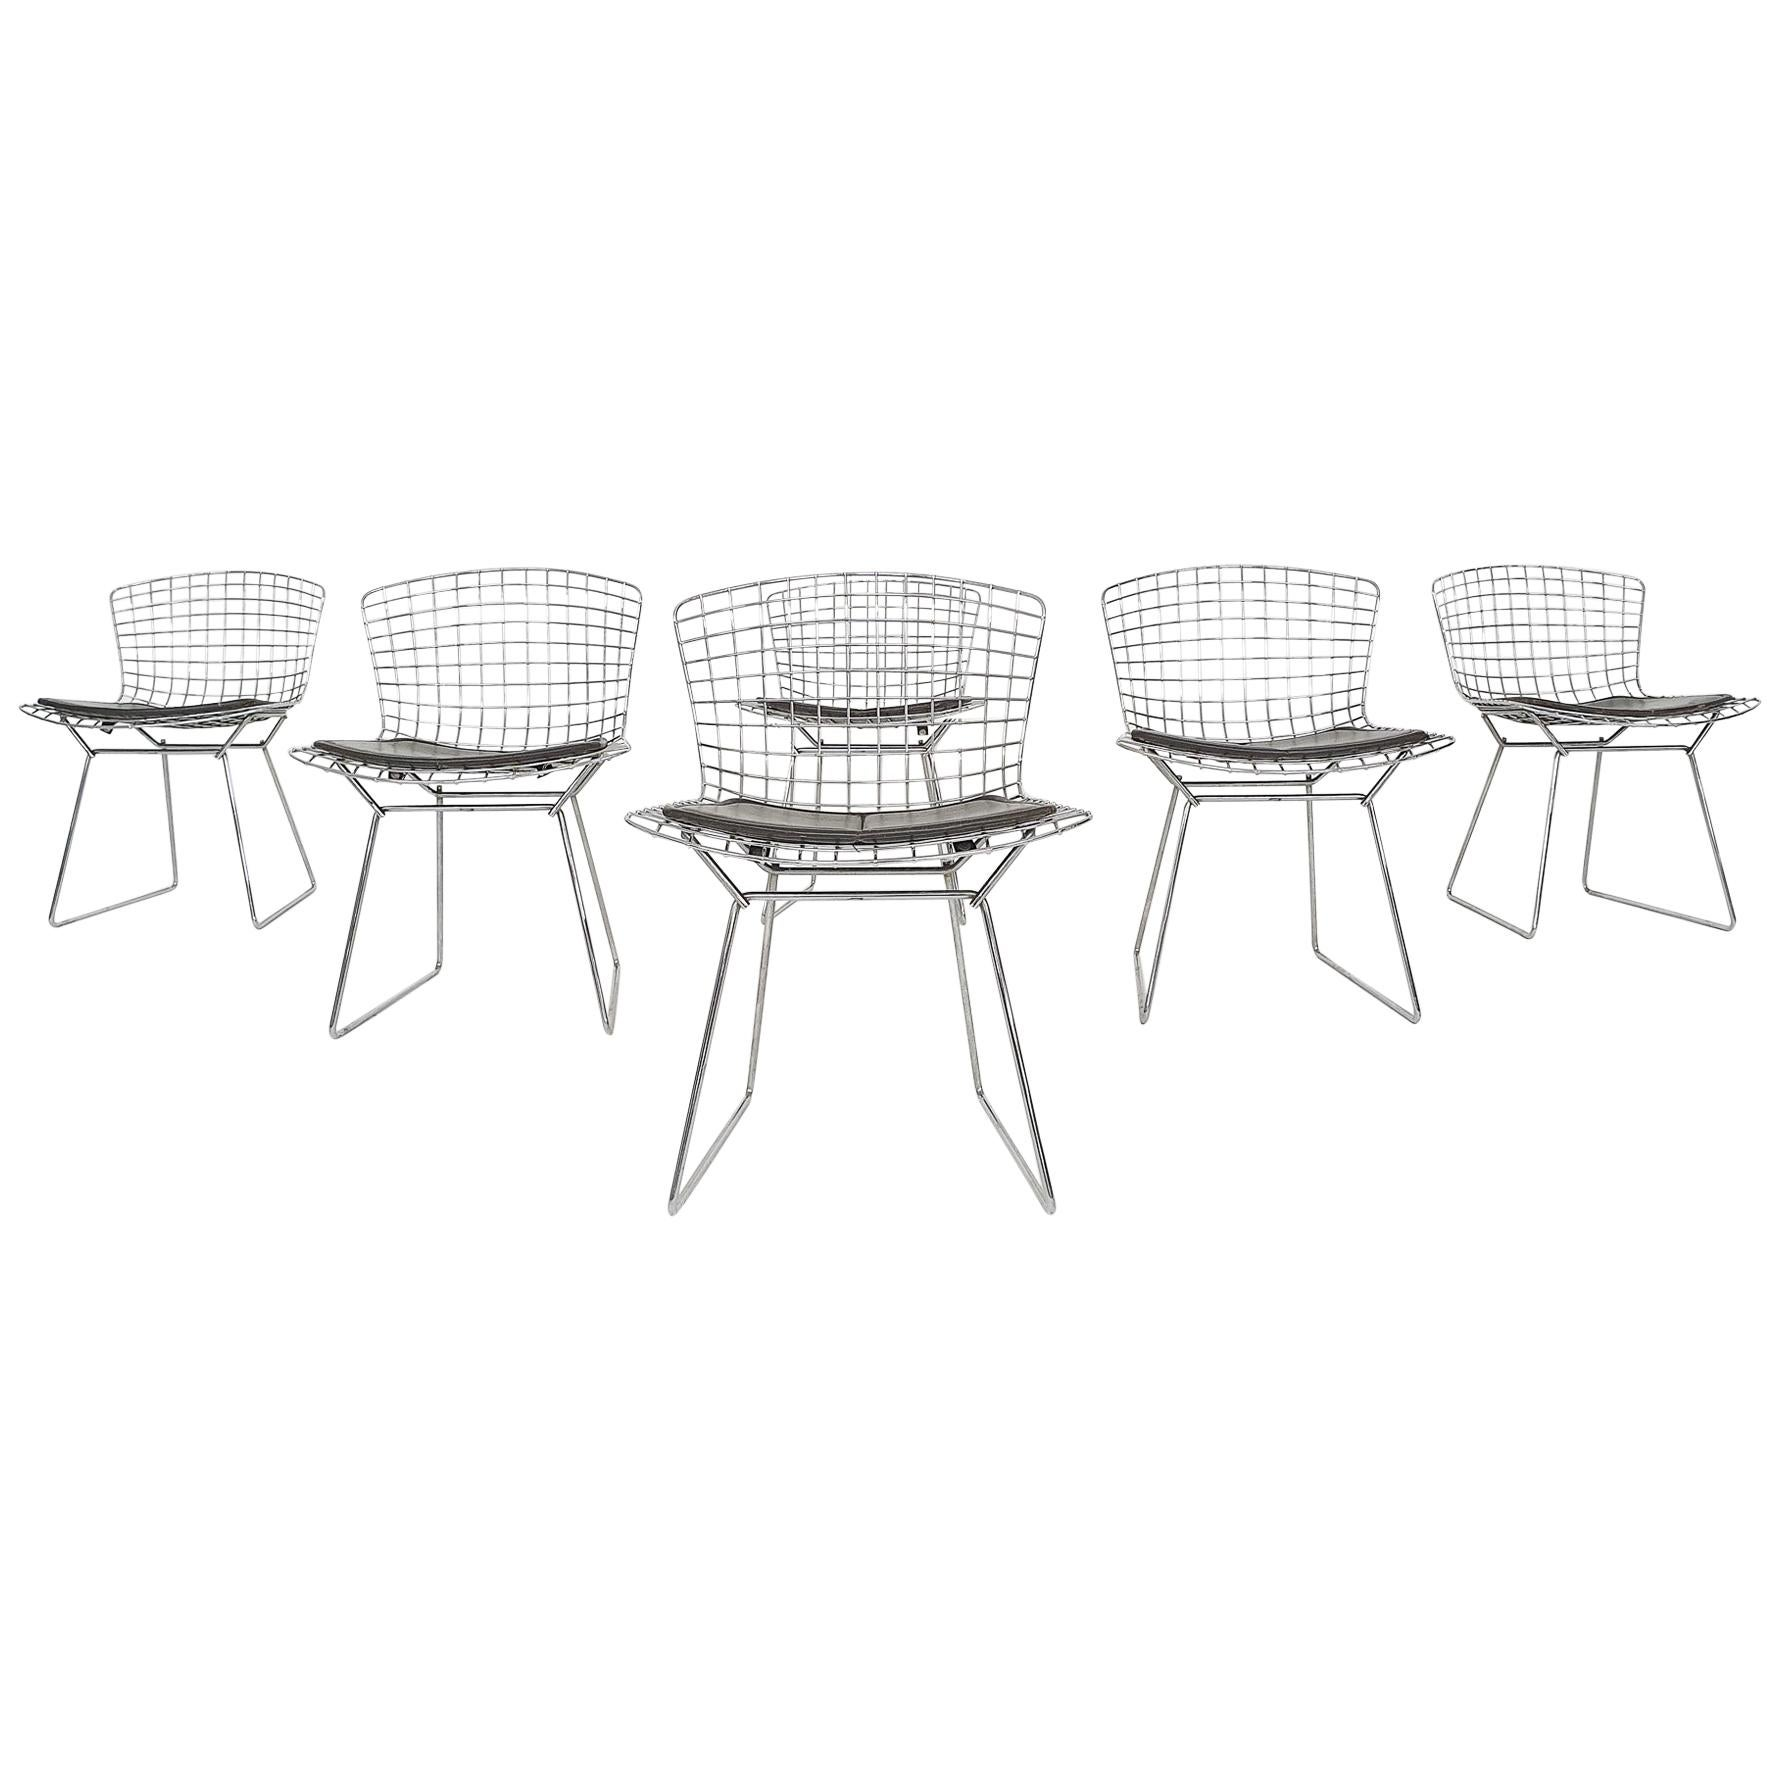 Set of 6 Original Vintage Harry Bertoia for Knoll Wire Dining or Side Chairs